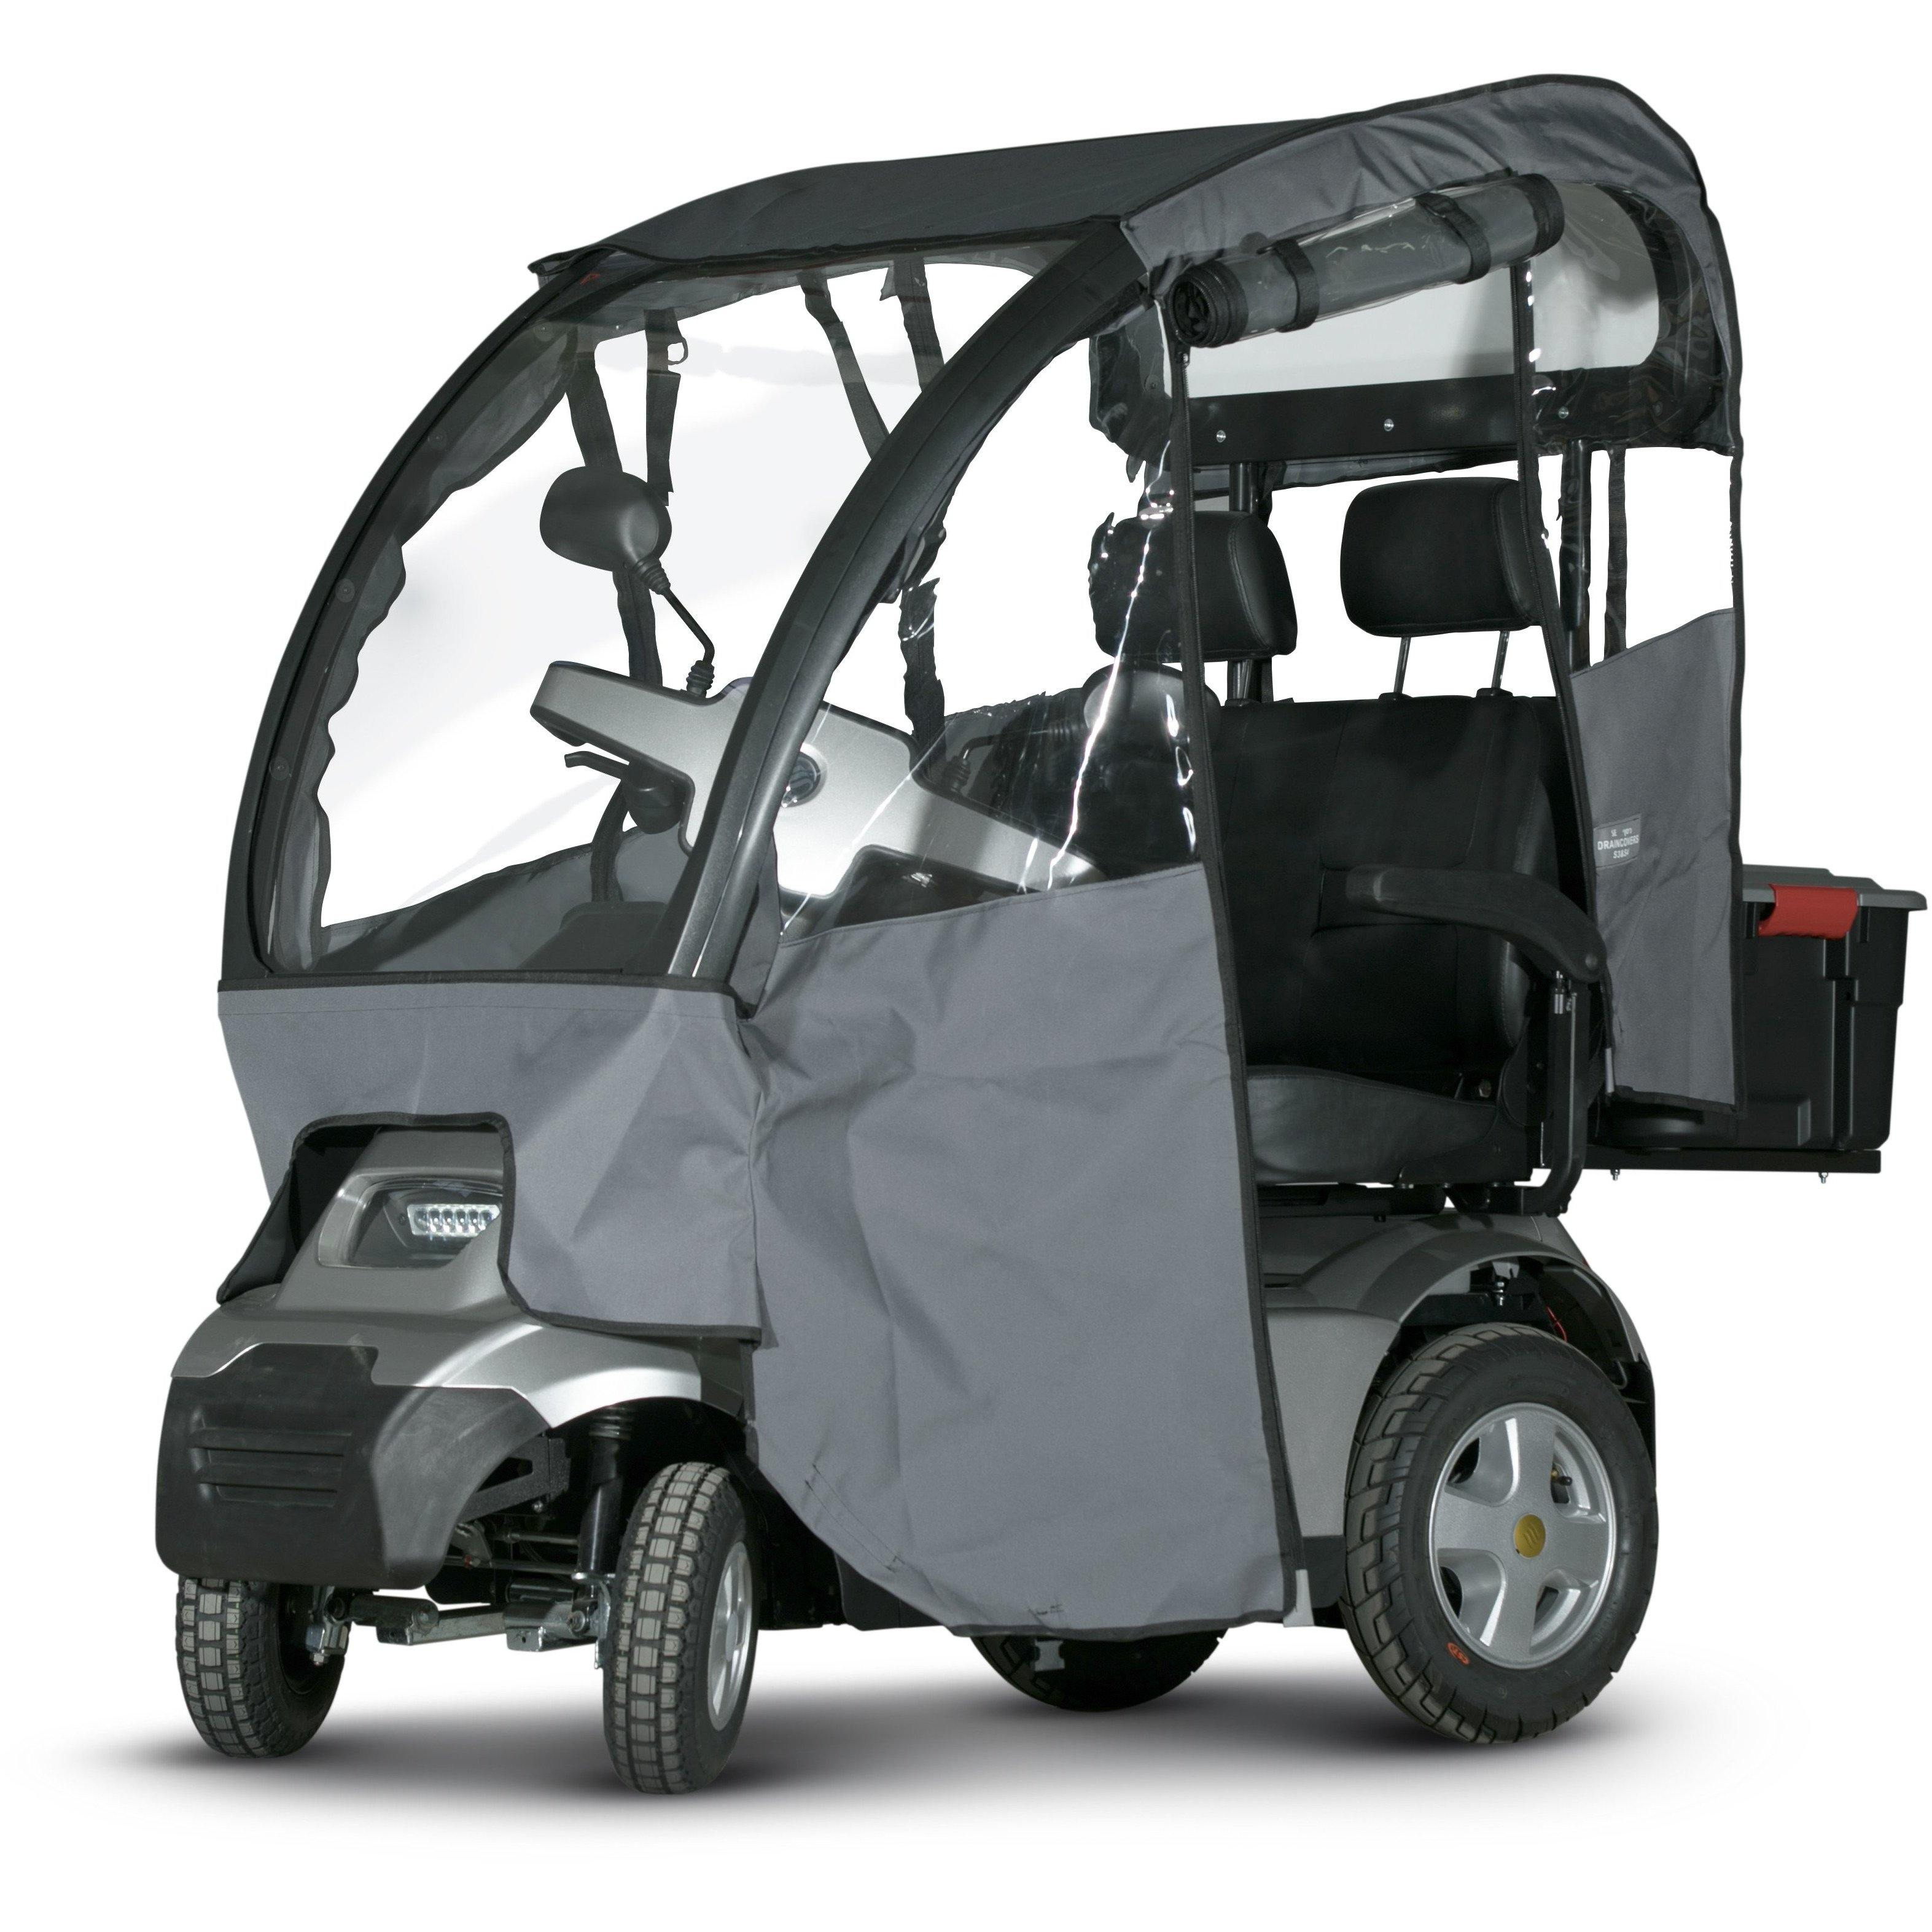 Dual seat Afiscooter with rain sides and roof